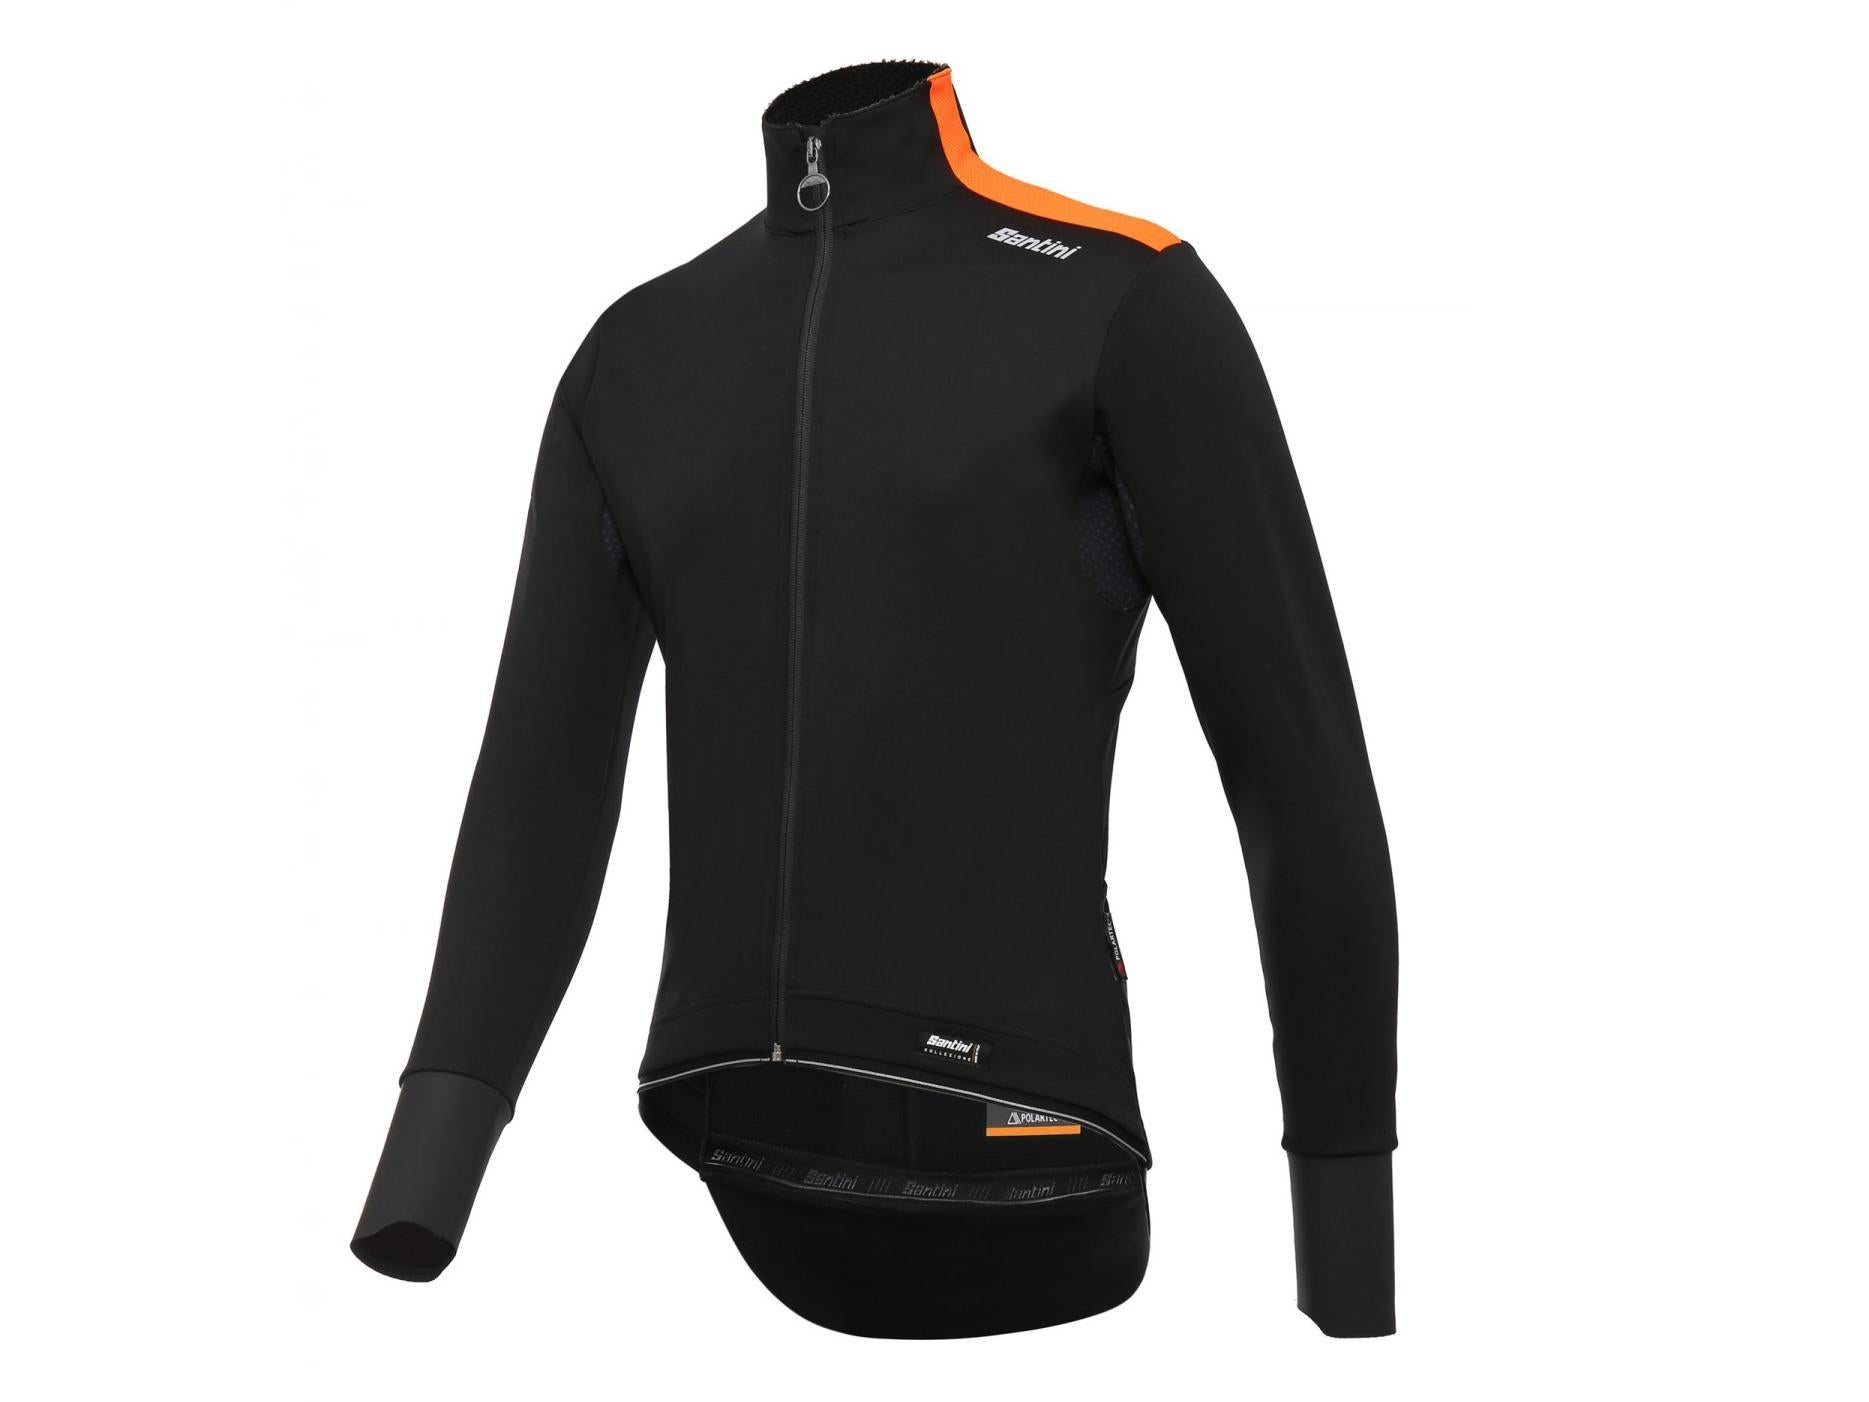 cc326f45f Pro riders debuted this super-snug jacket at Milan-San Remo at the opening  of the 2018 Classics season. The riders might not have enjoyed it